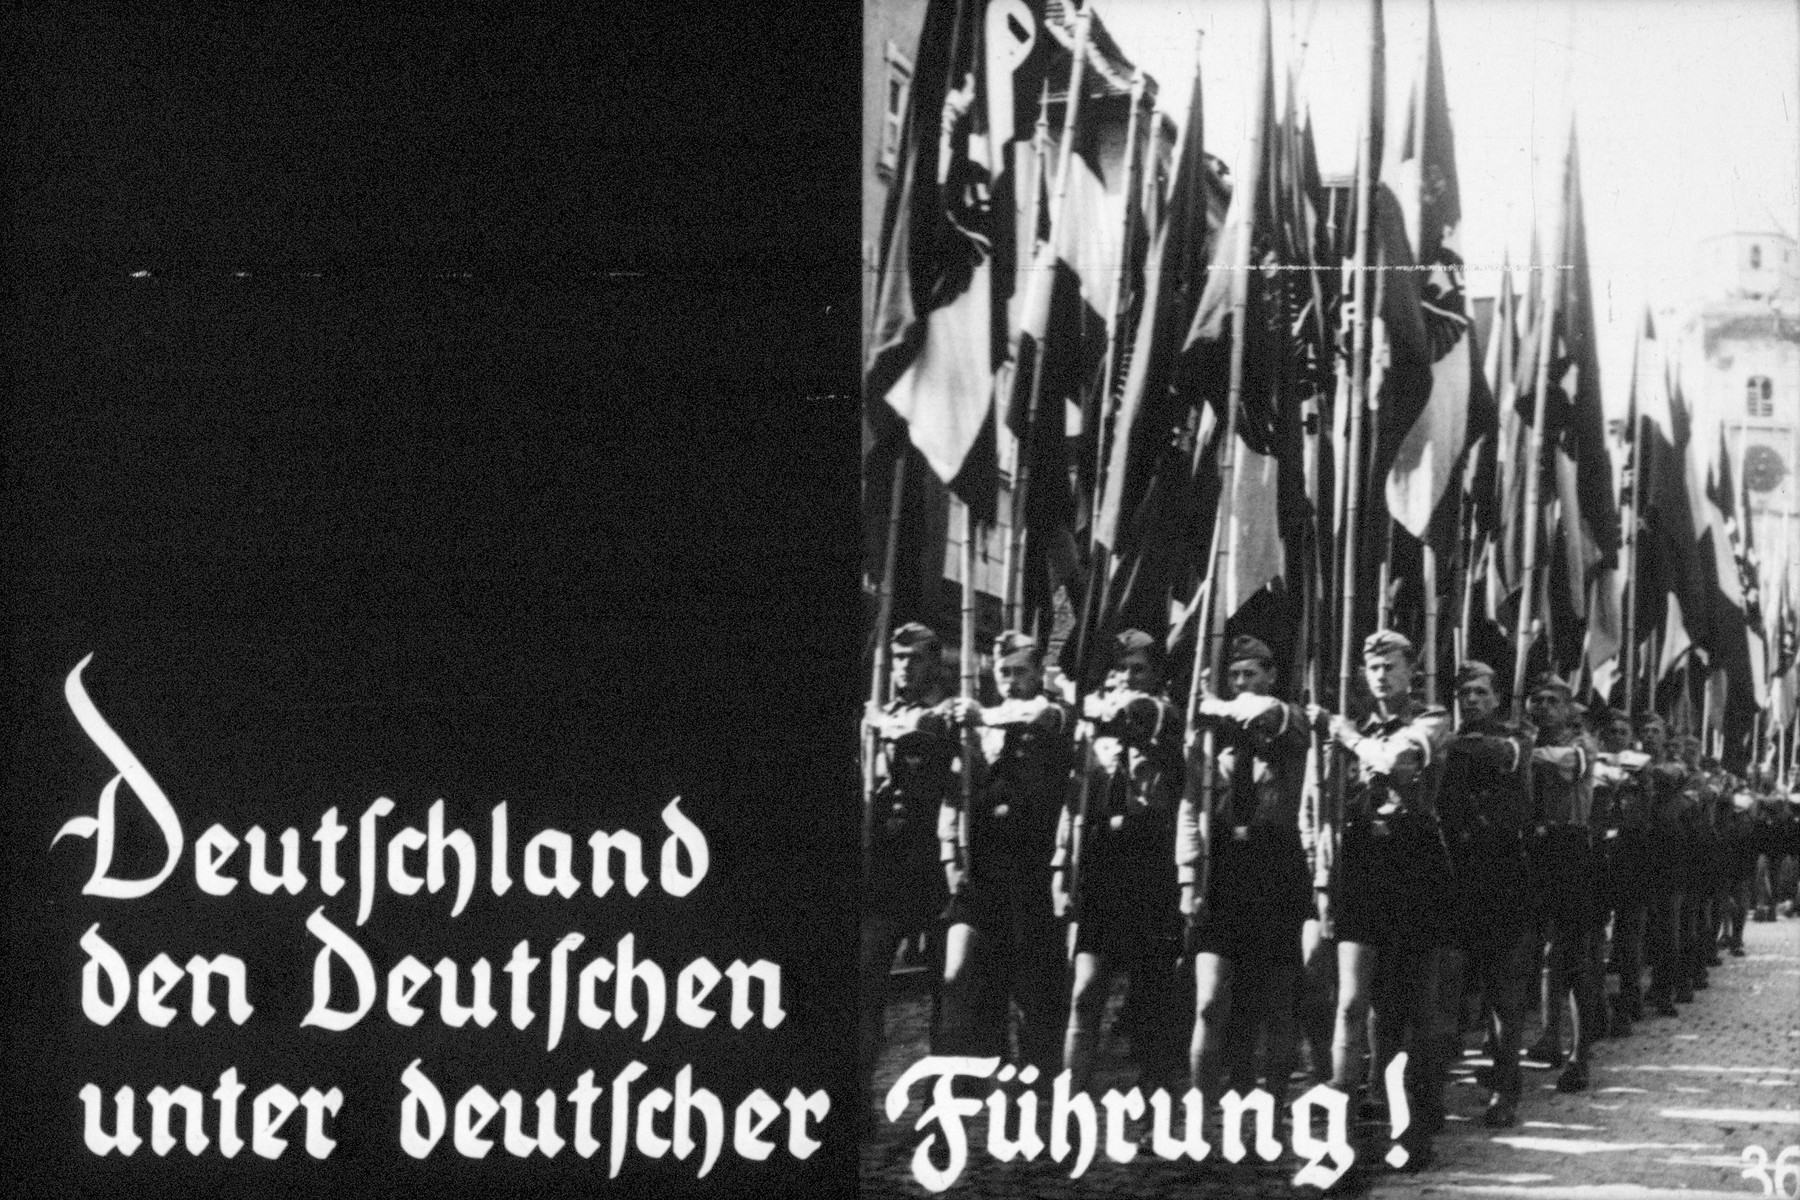 36th slide of Hitler Youth slideshow about the aftermath of WWI and the rise of Nazism.  Deutschland den Deutschen unter deutscher Führung! // Germany for the Germans under German leadership!